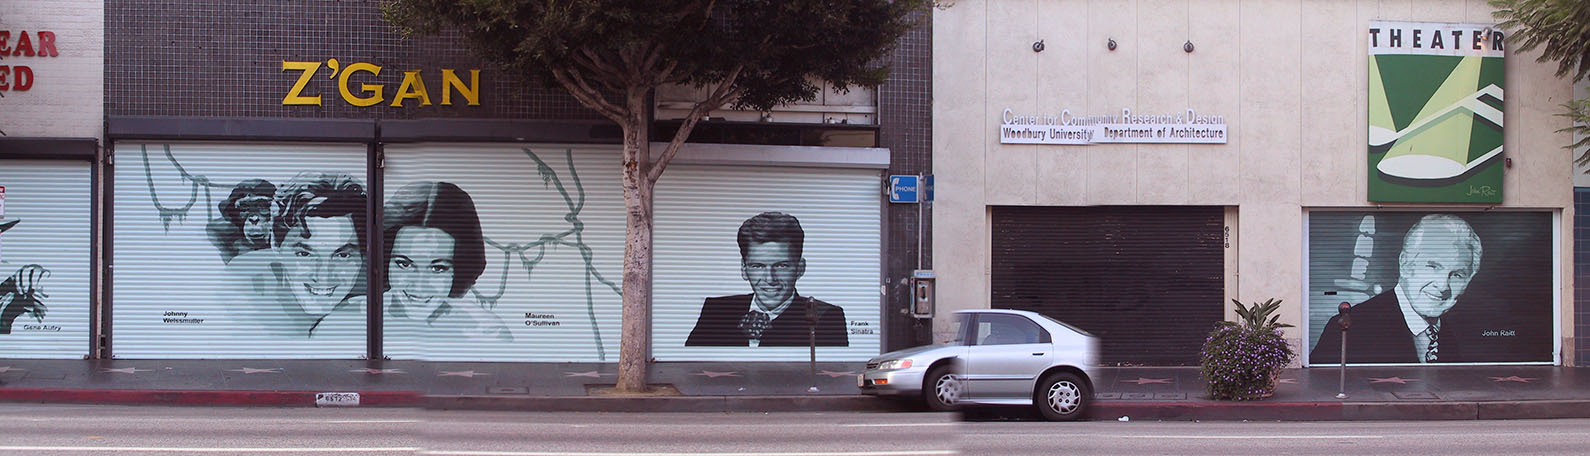 Weismuller, O'Sullivan,Sinatra and Raitt painted on doors